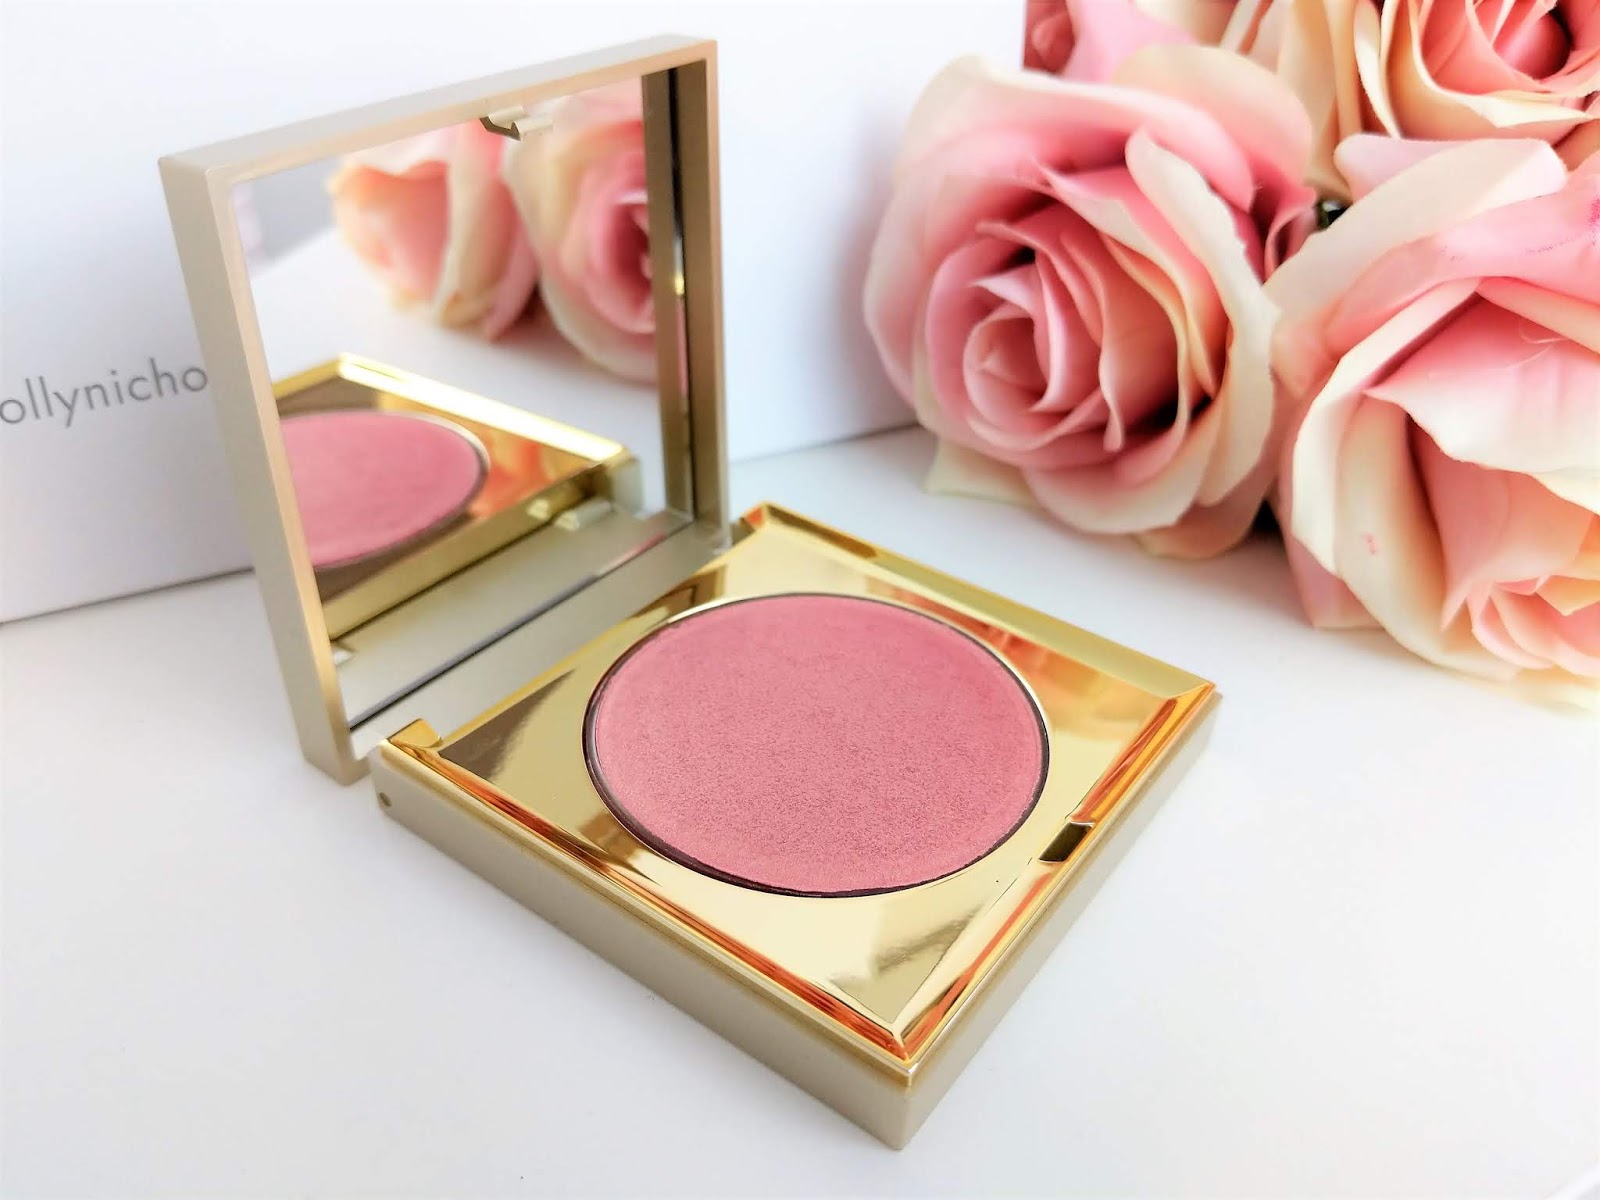 Stila_Vivid_and_Vibrant_Incandescence_Highlighter